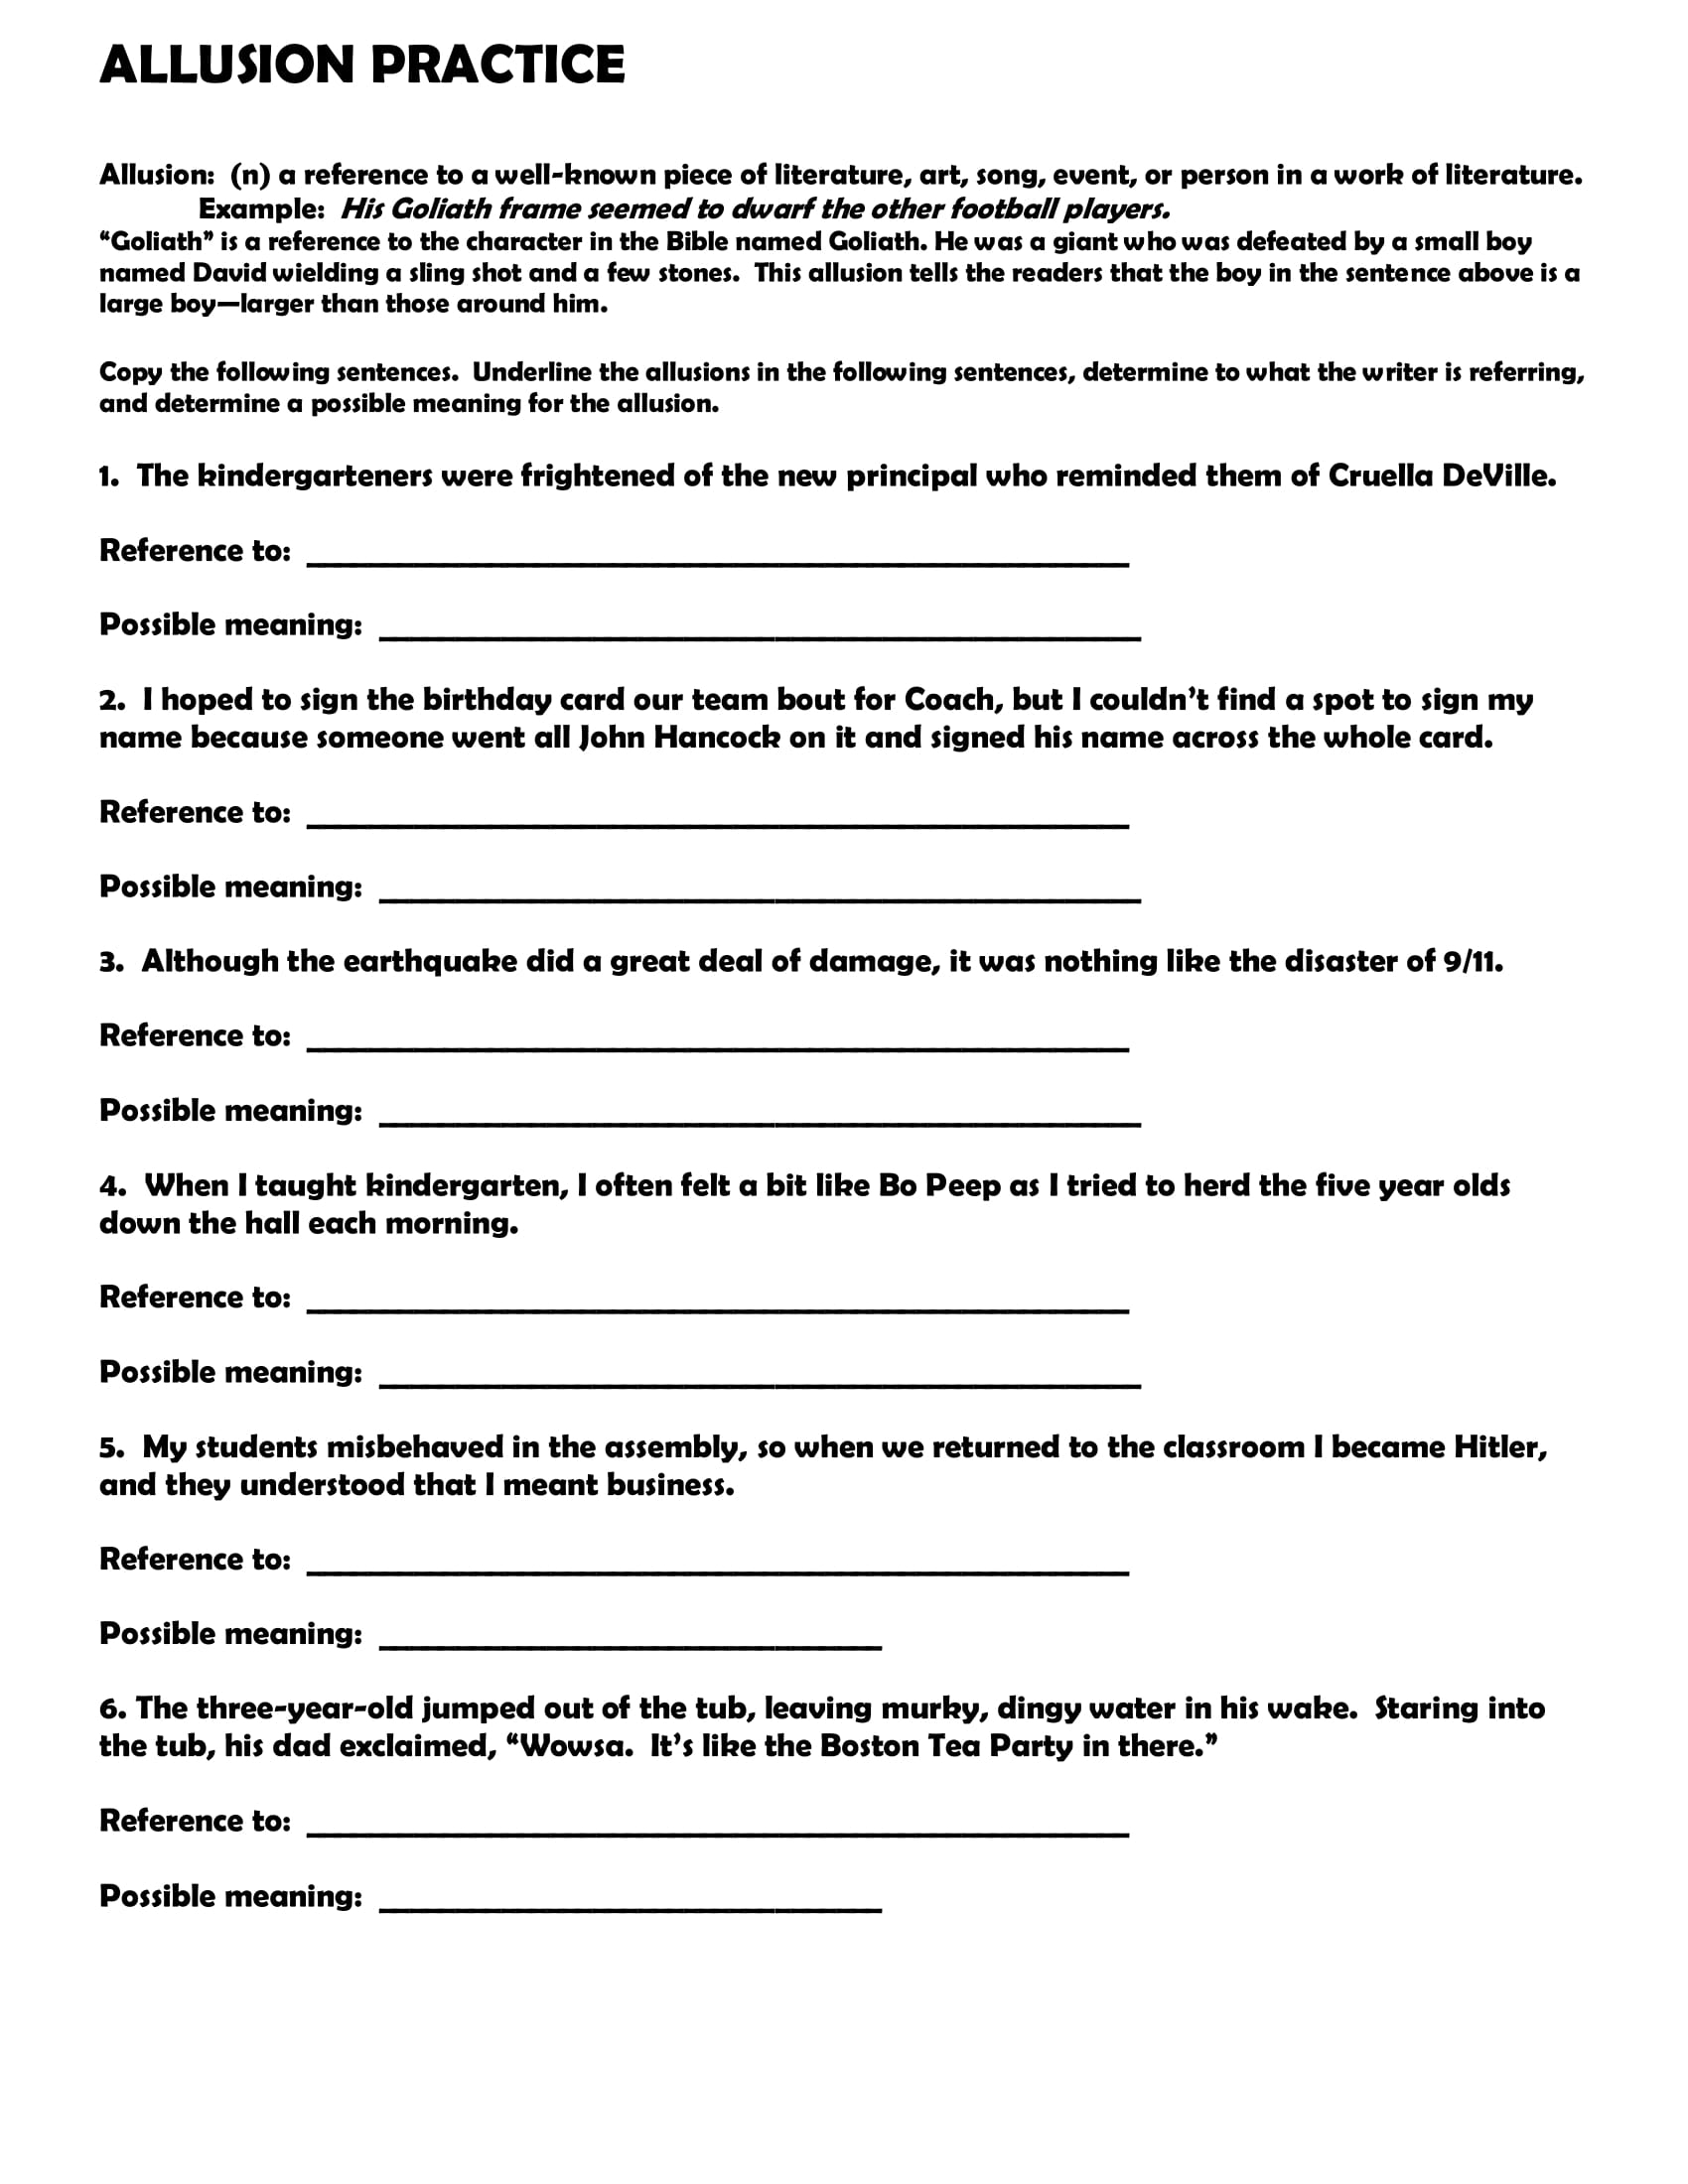 allusion practice worksheet example